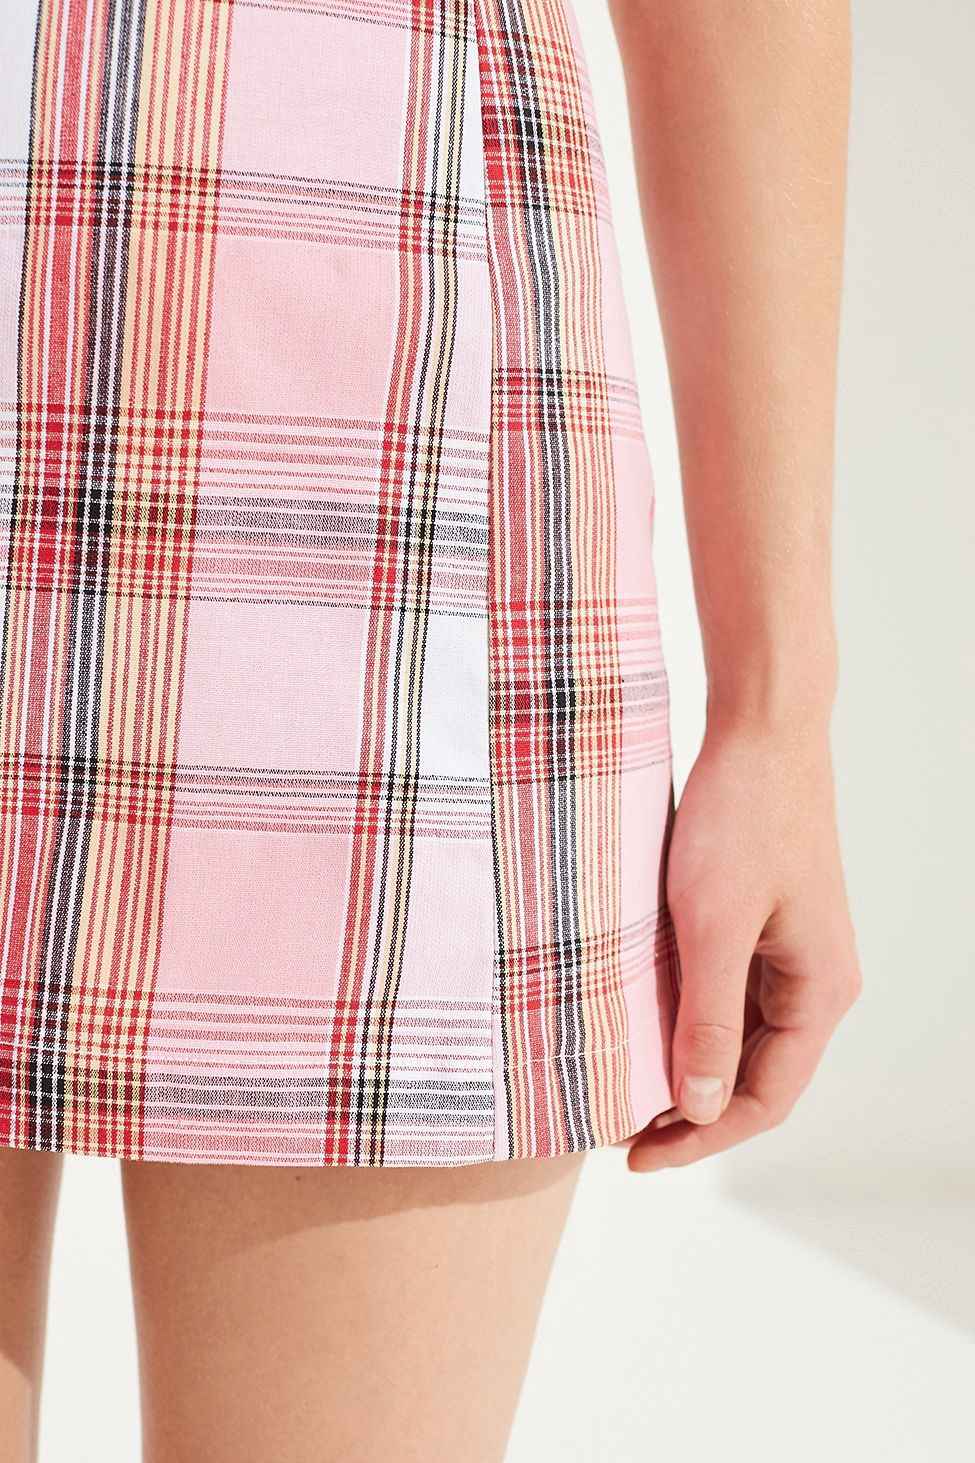 6ddacfd989 Urban Outfitters Renewal Remnants Pastel Plaid Skirt - Pink Xs ...